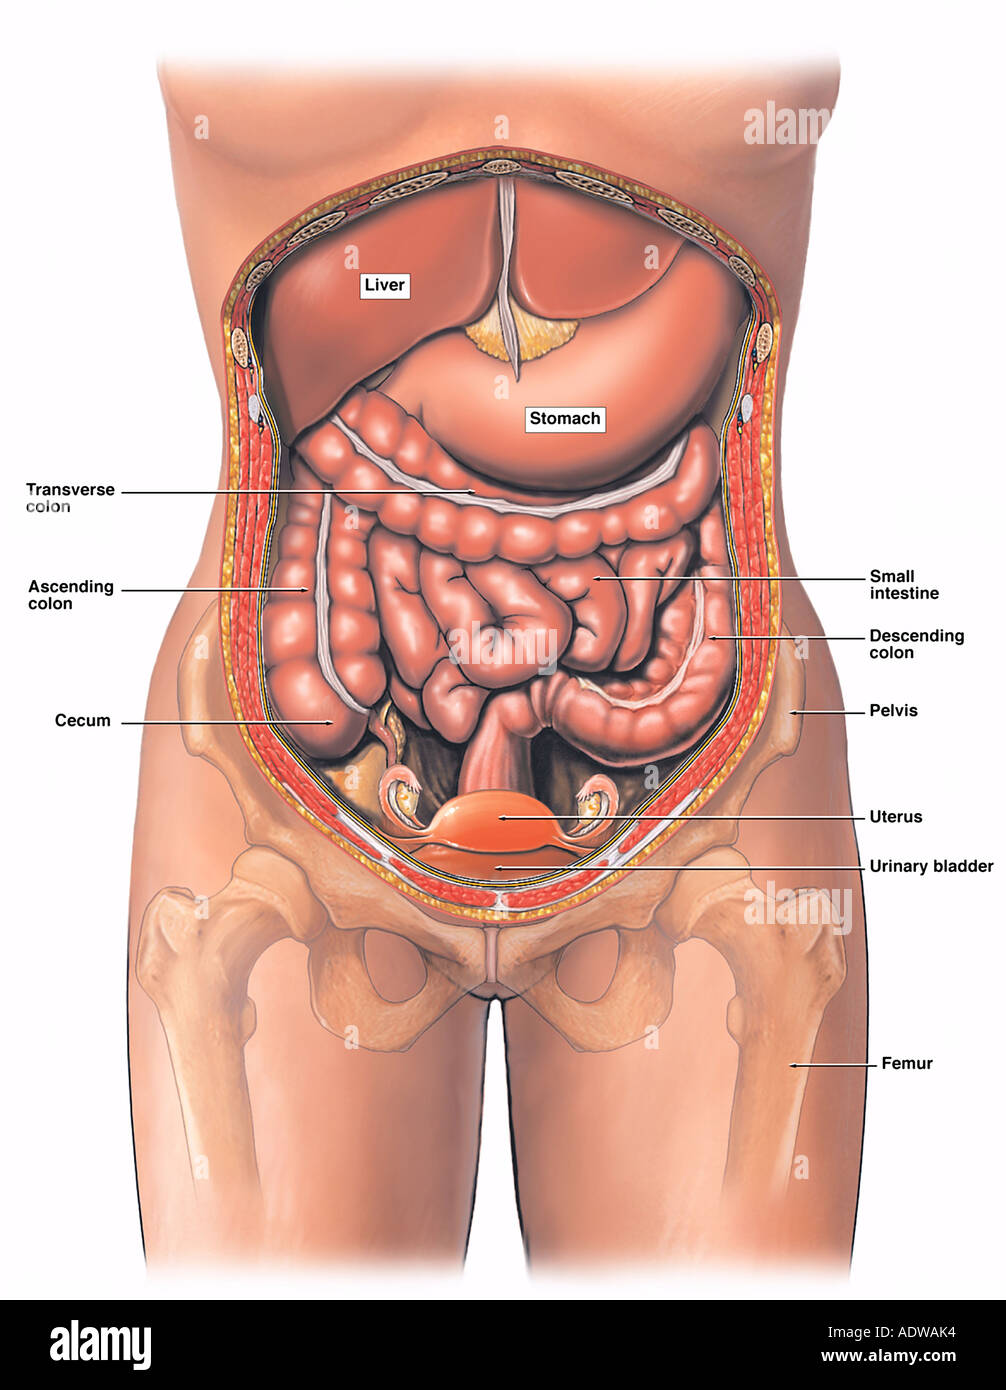 anatomy of the female abdomen and pelvis stock photo, royalty free, Human Body